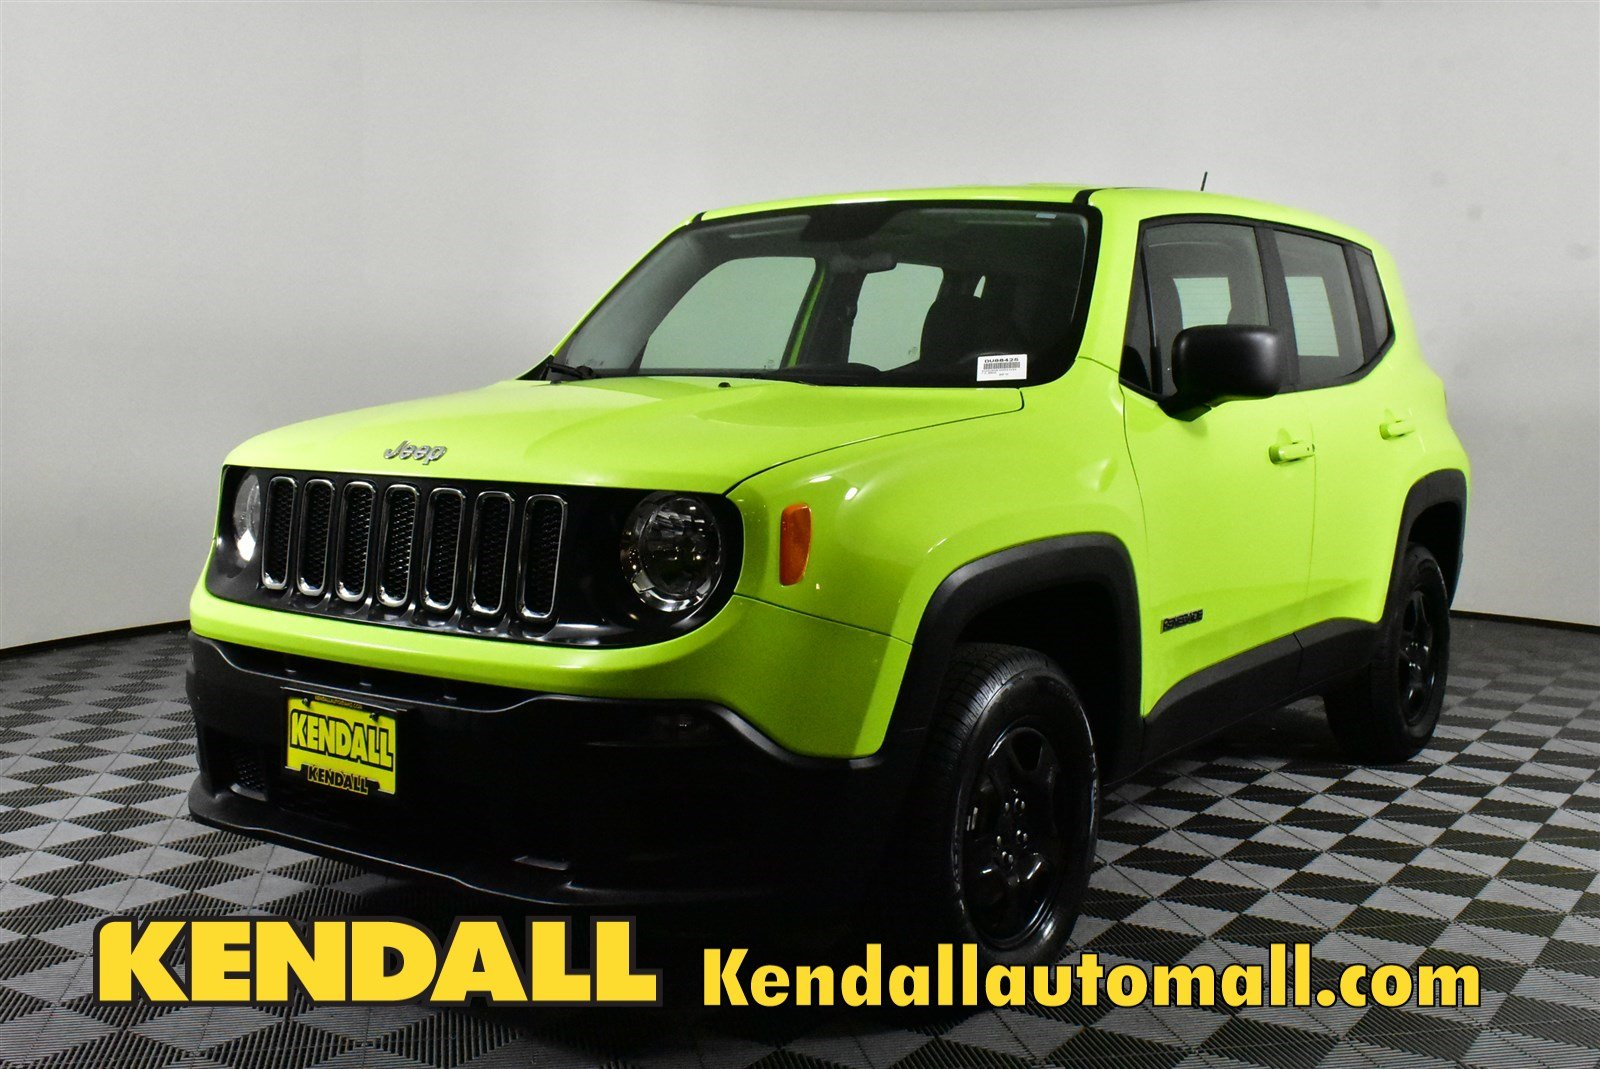 Pre Owned 2017 Jeep Renegade Sport In Nampa Du88425 Kendall At The Idaho Center Auto Mall